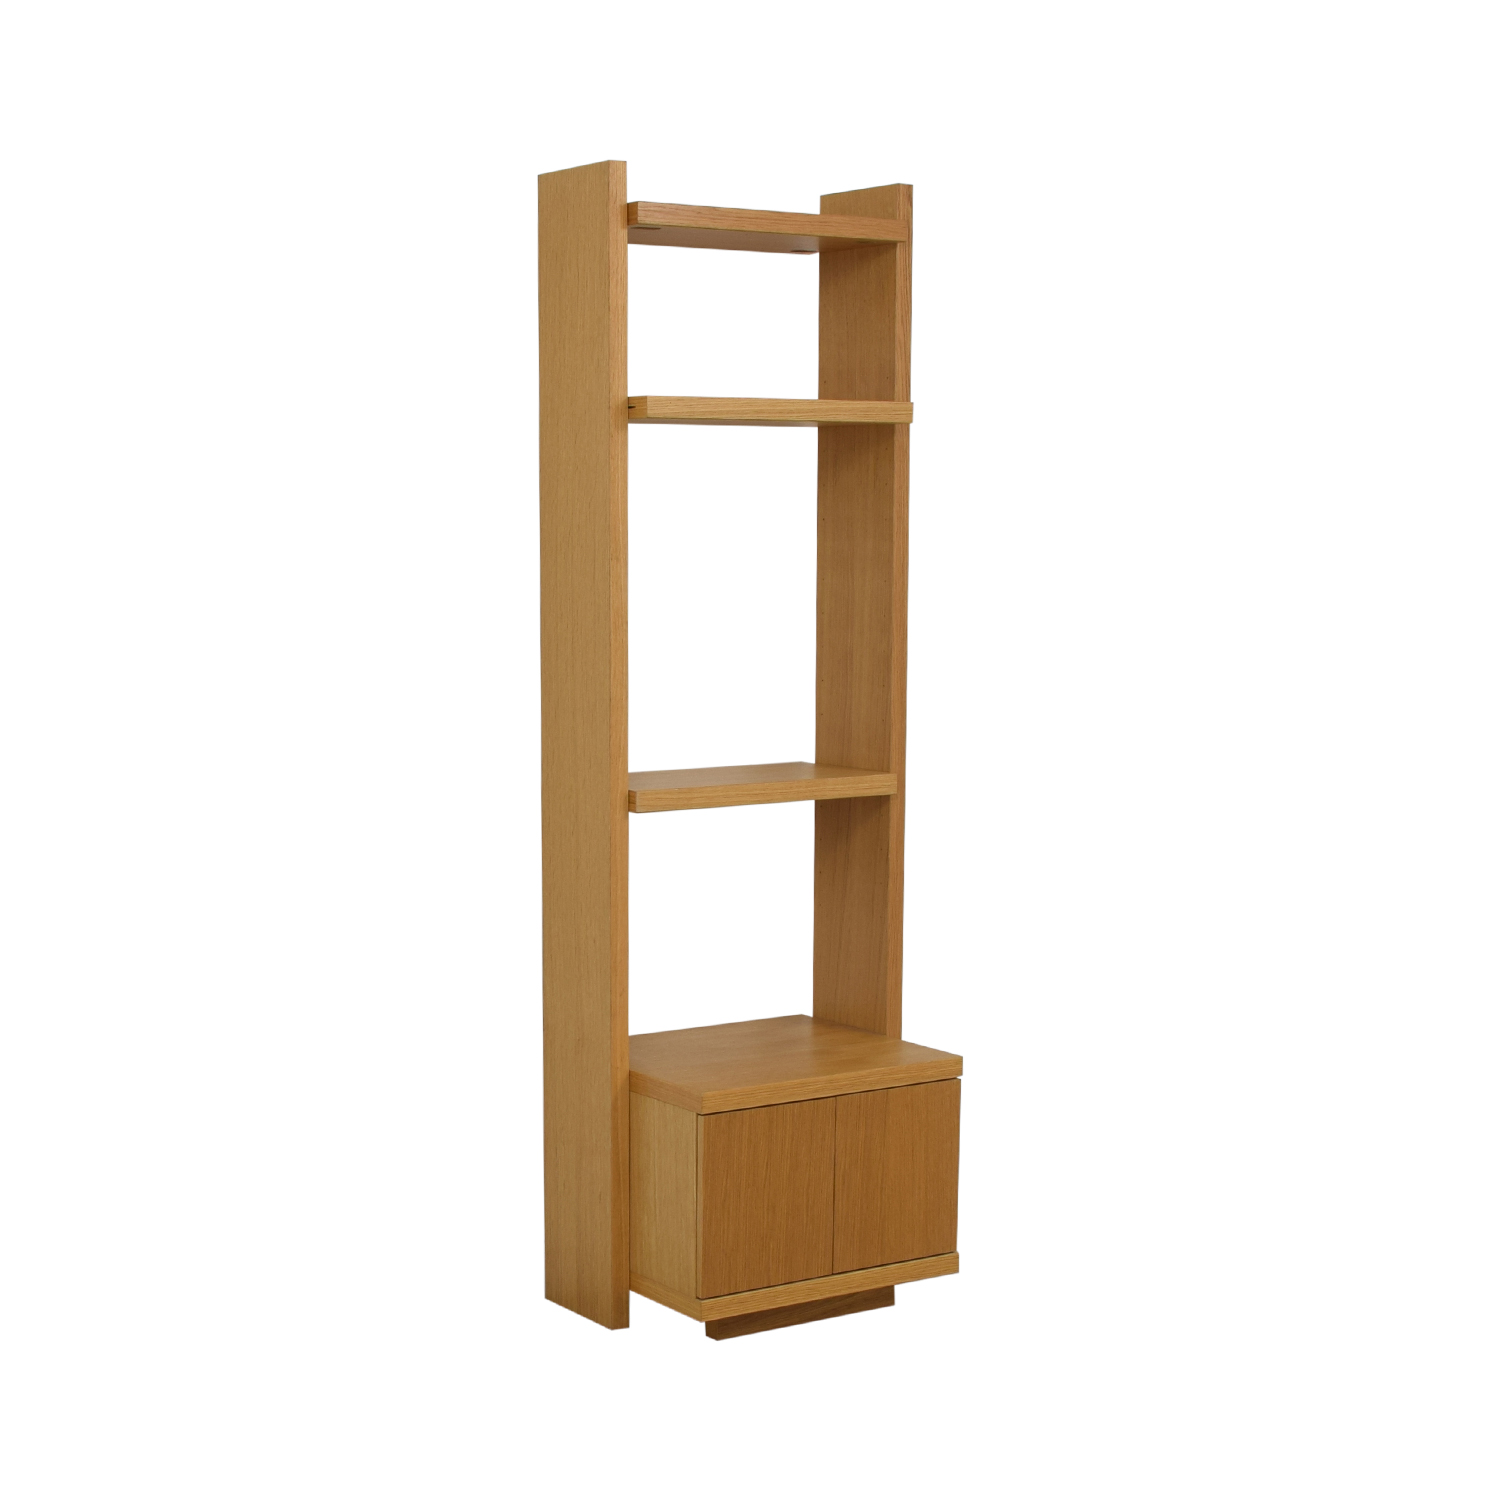 Oak Shelves with Storage for sale